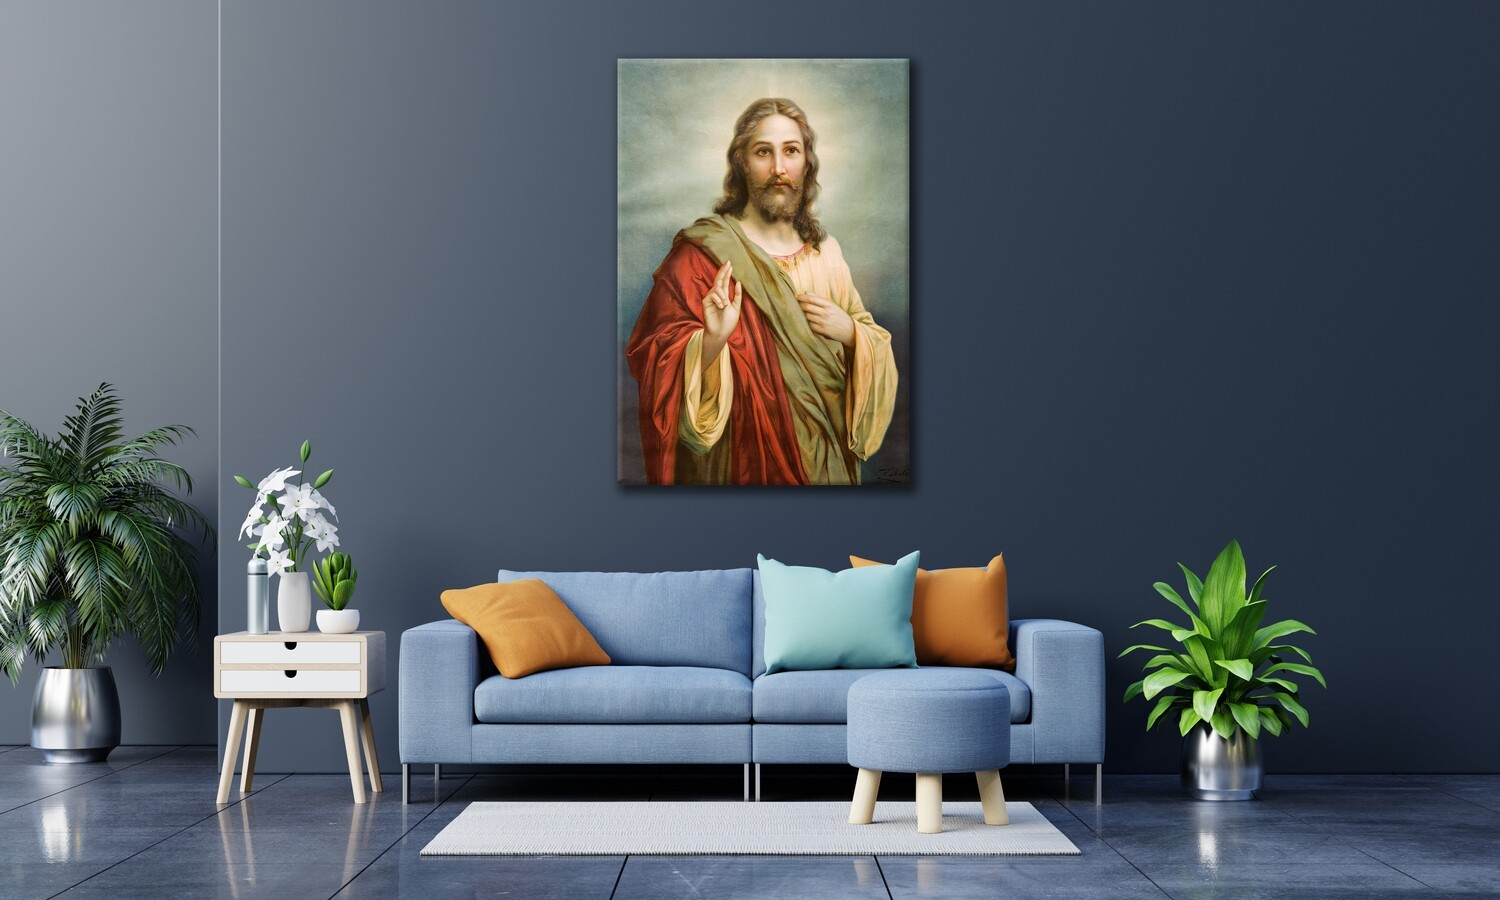 Jesus Christ Frameless Acrylic Wall Art -Jesus Painting Printed On Acrylic Glass- Christian Wall Art